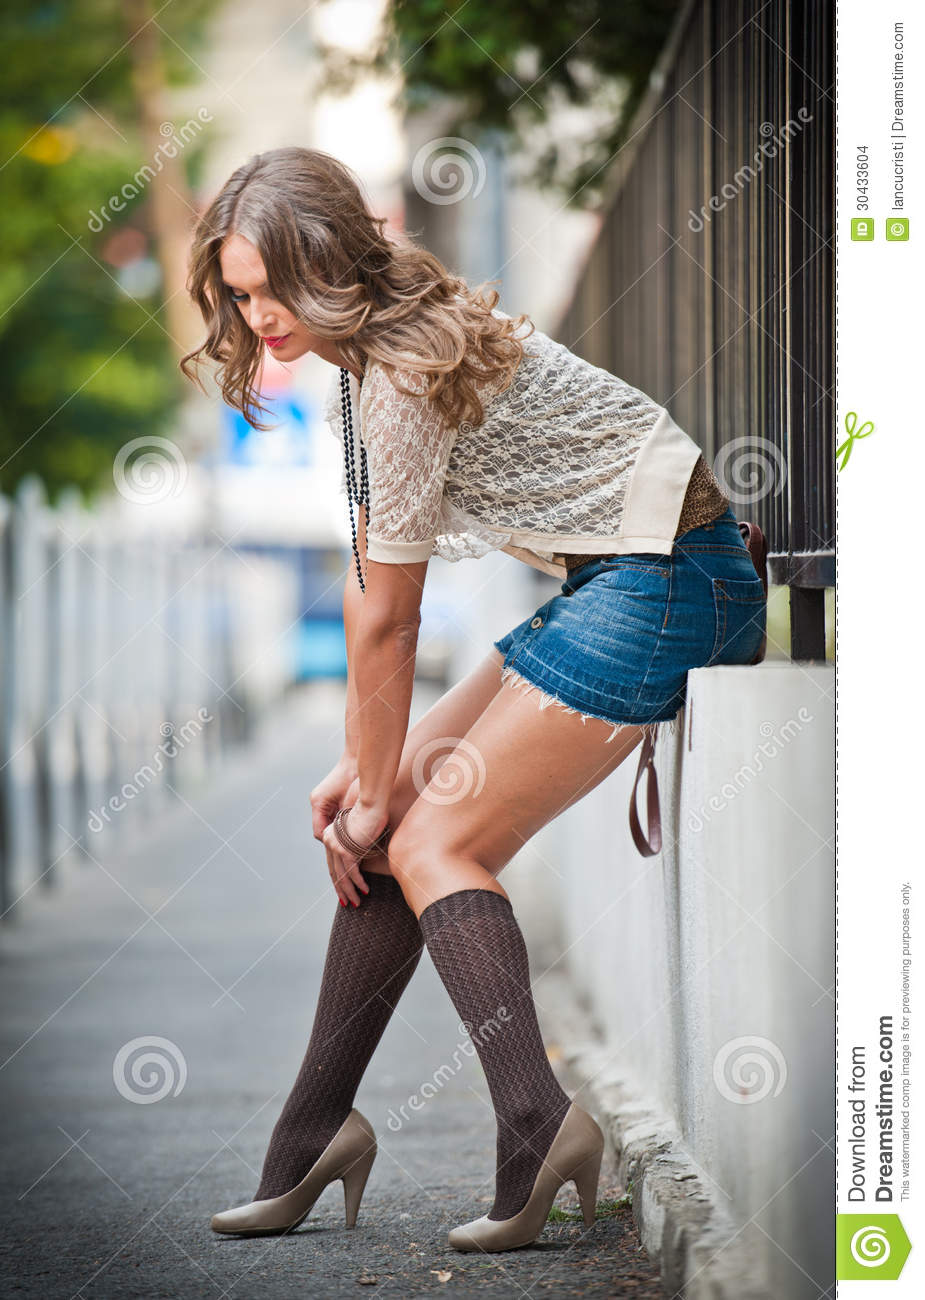 Young European Girl in Urban Setting.sexy woman dressed provocatively ...